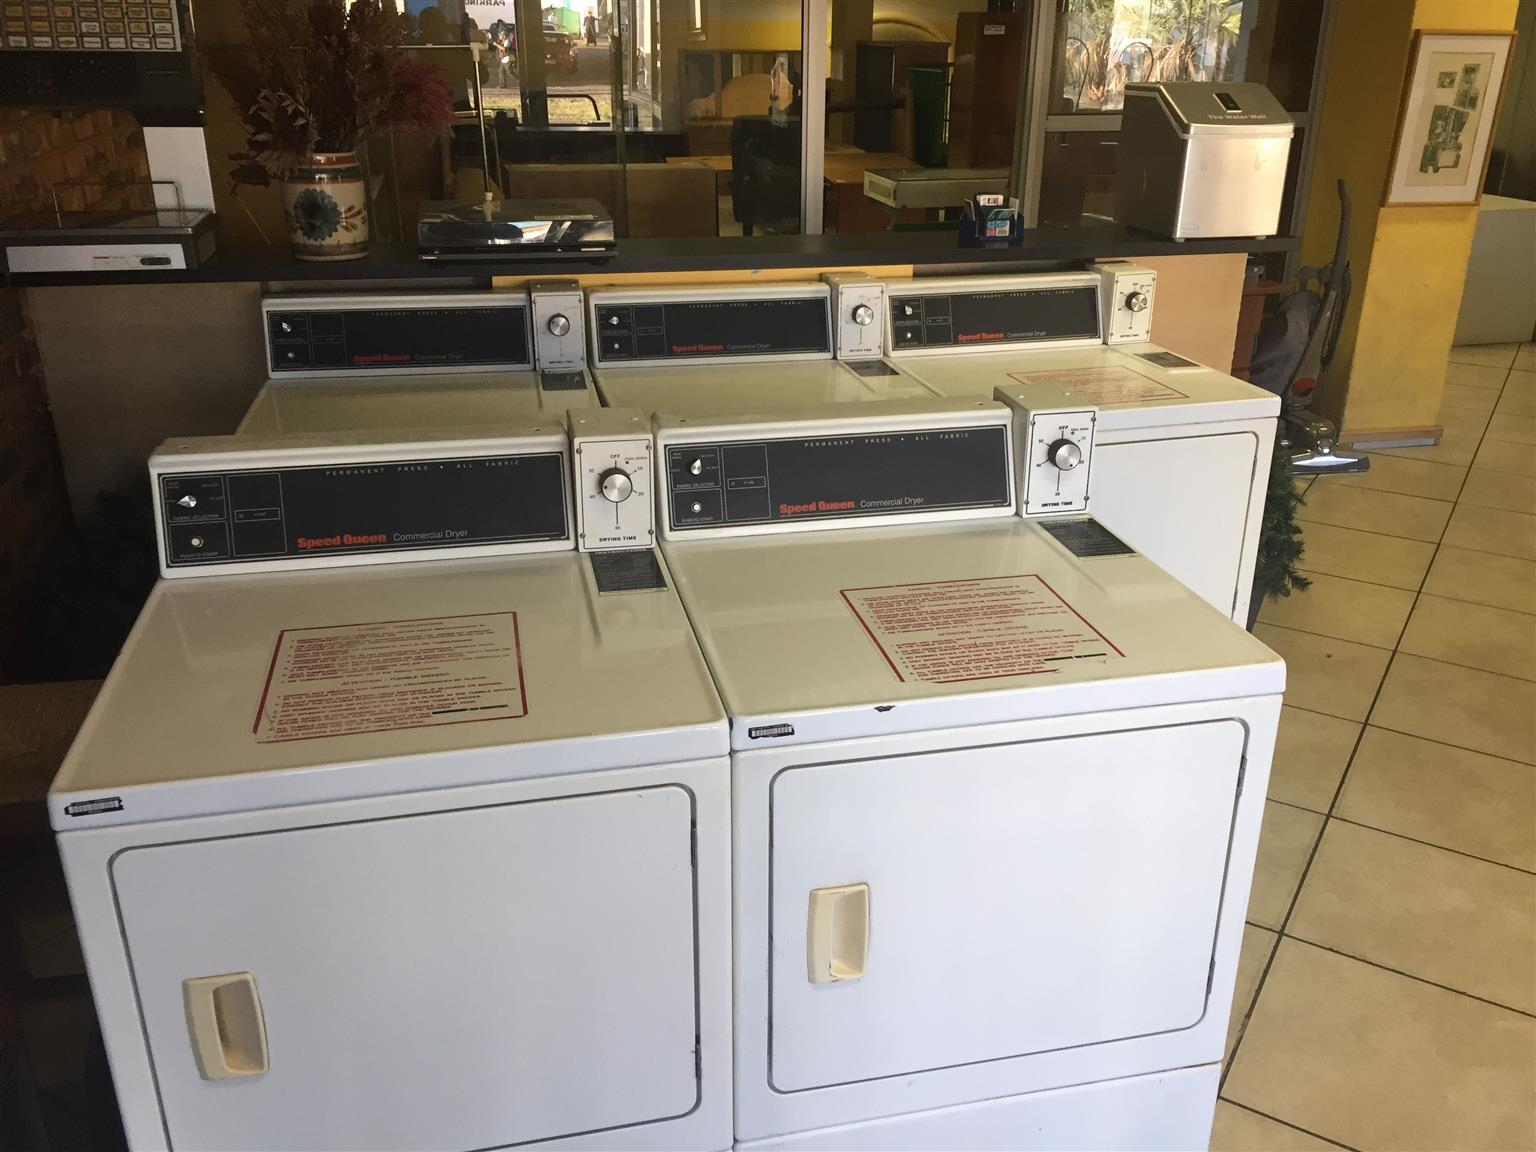 SpeedQueen Washers and Dryers